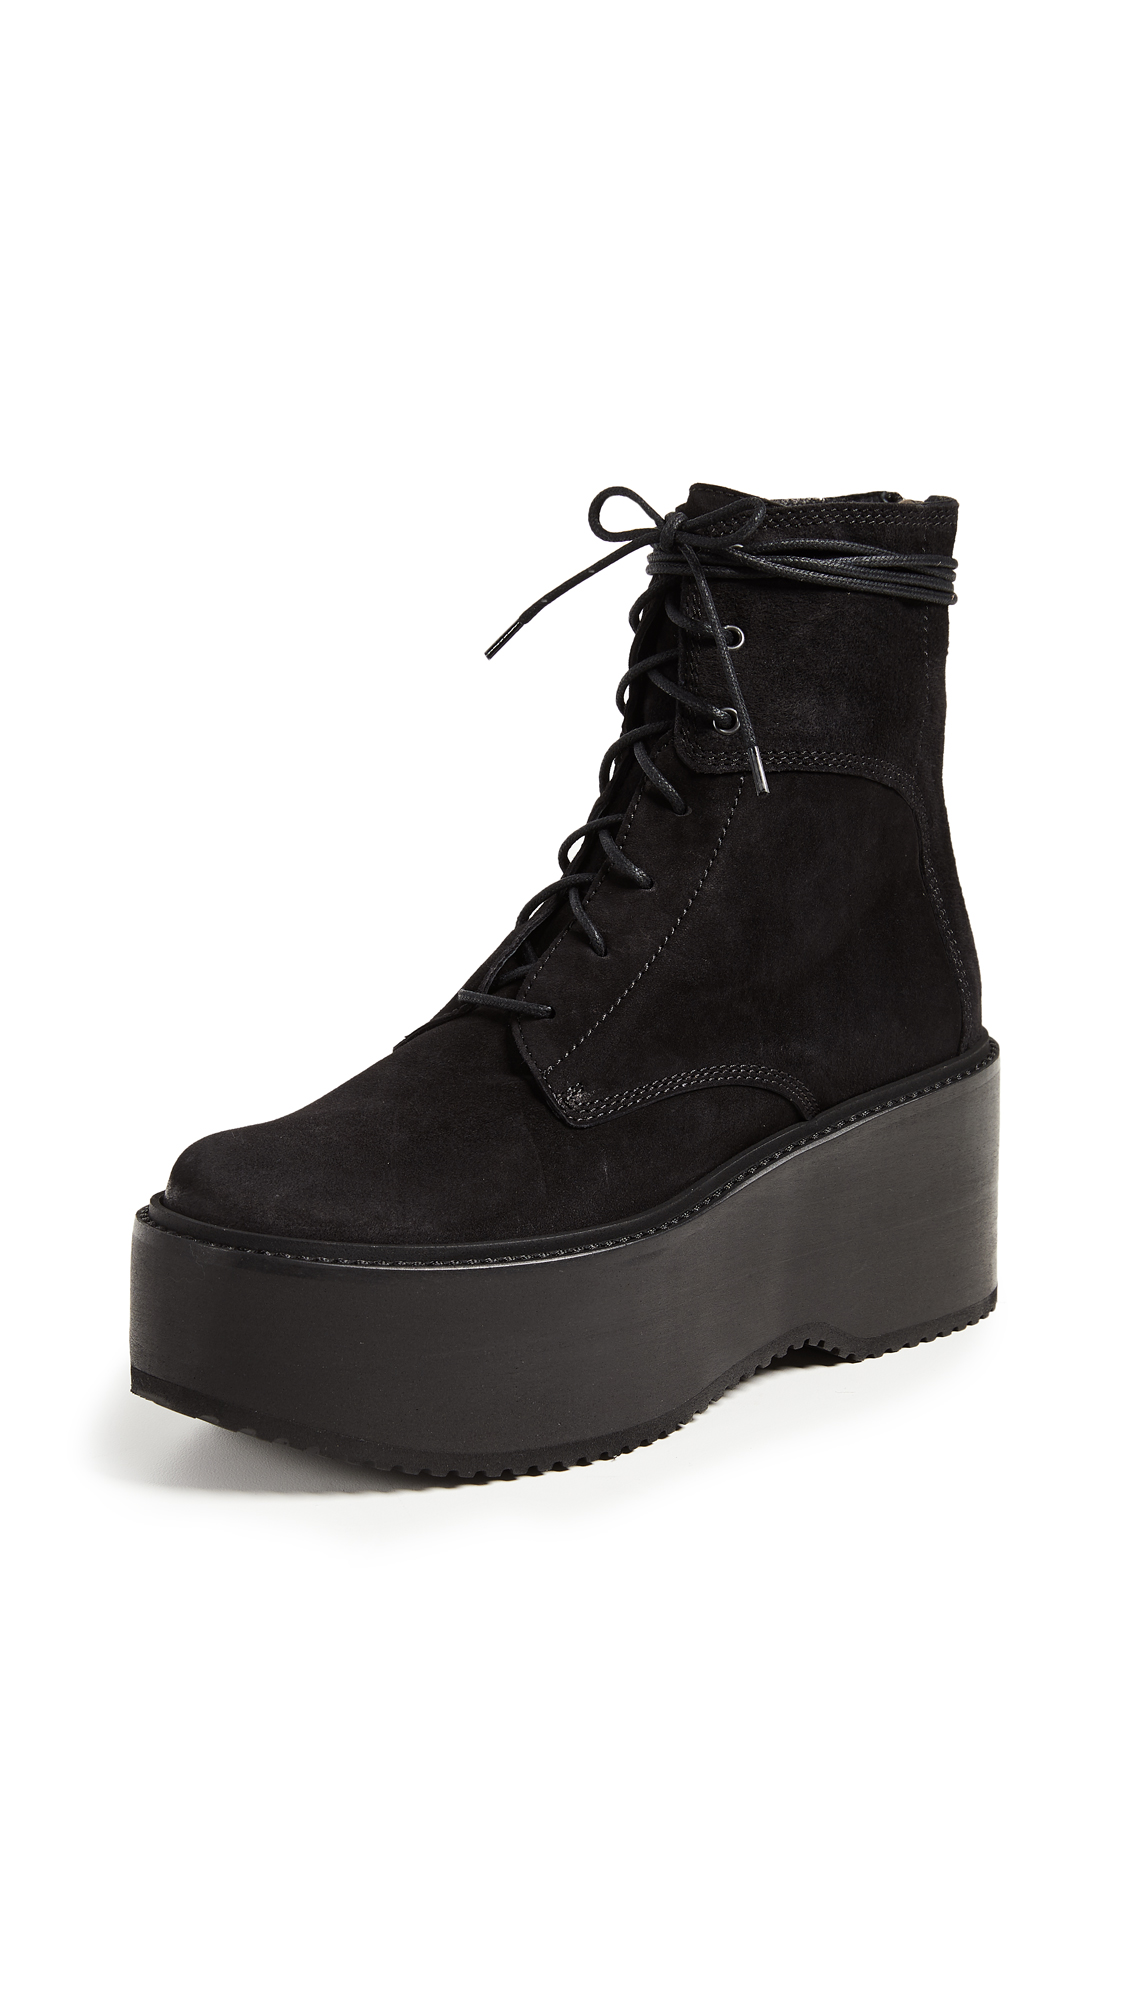 LD Tuttle The Plunge Platform Combat Boots - Washed Black